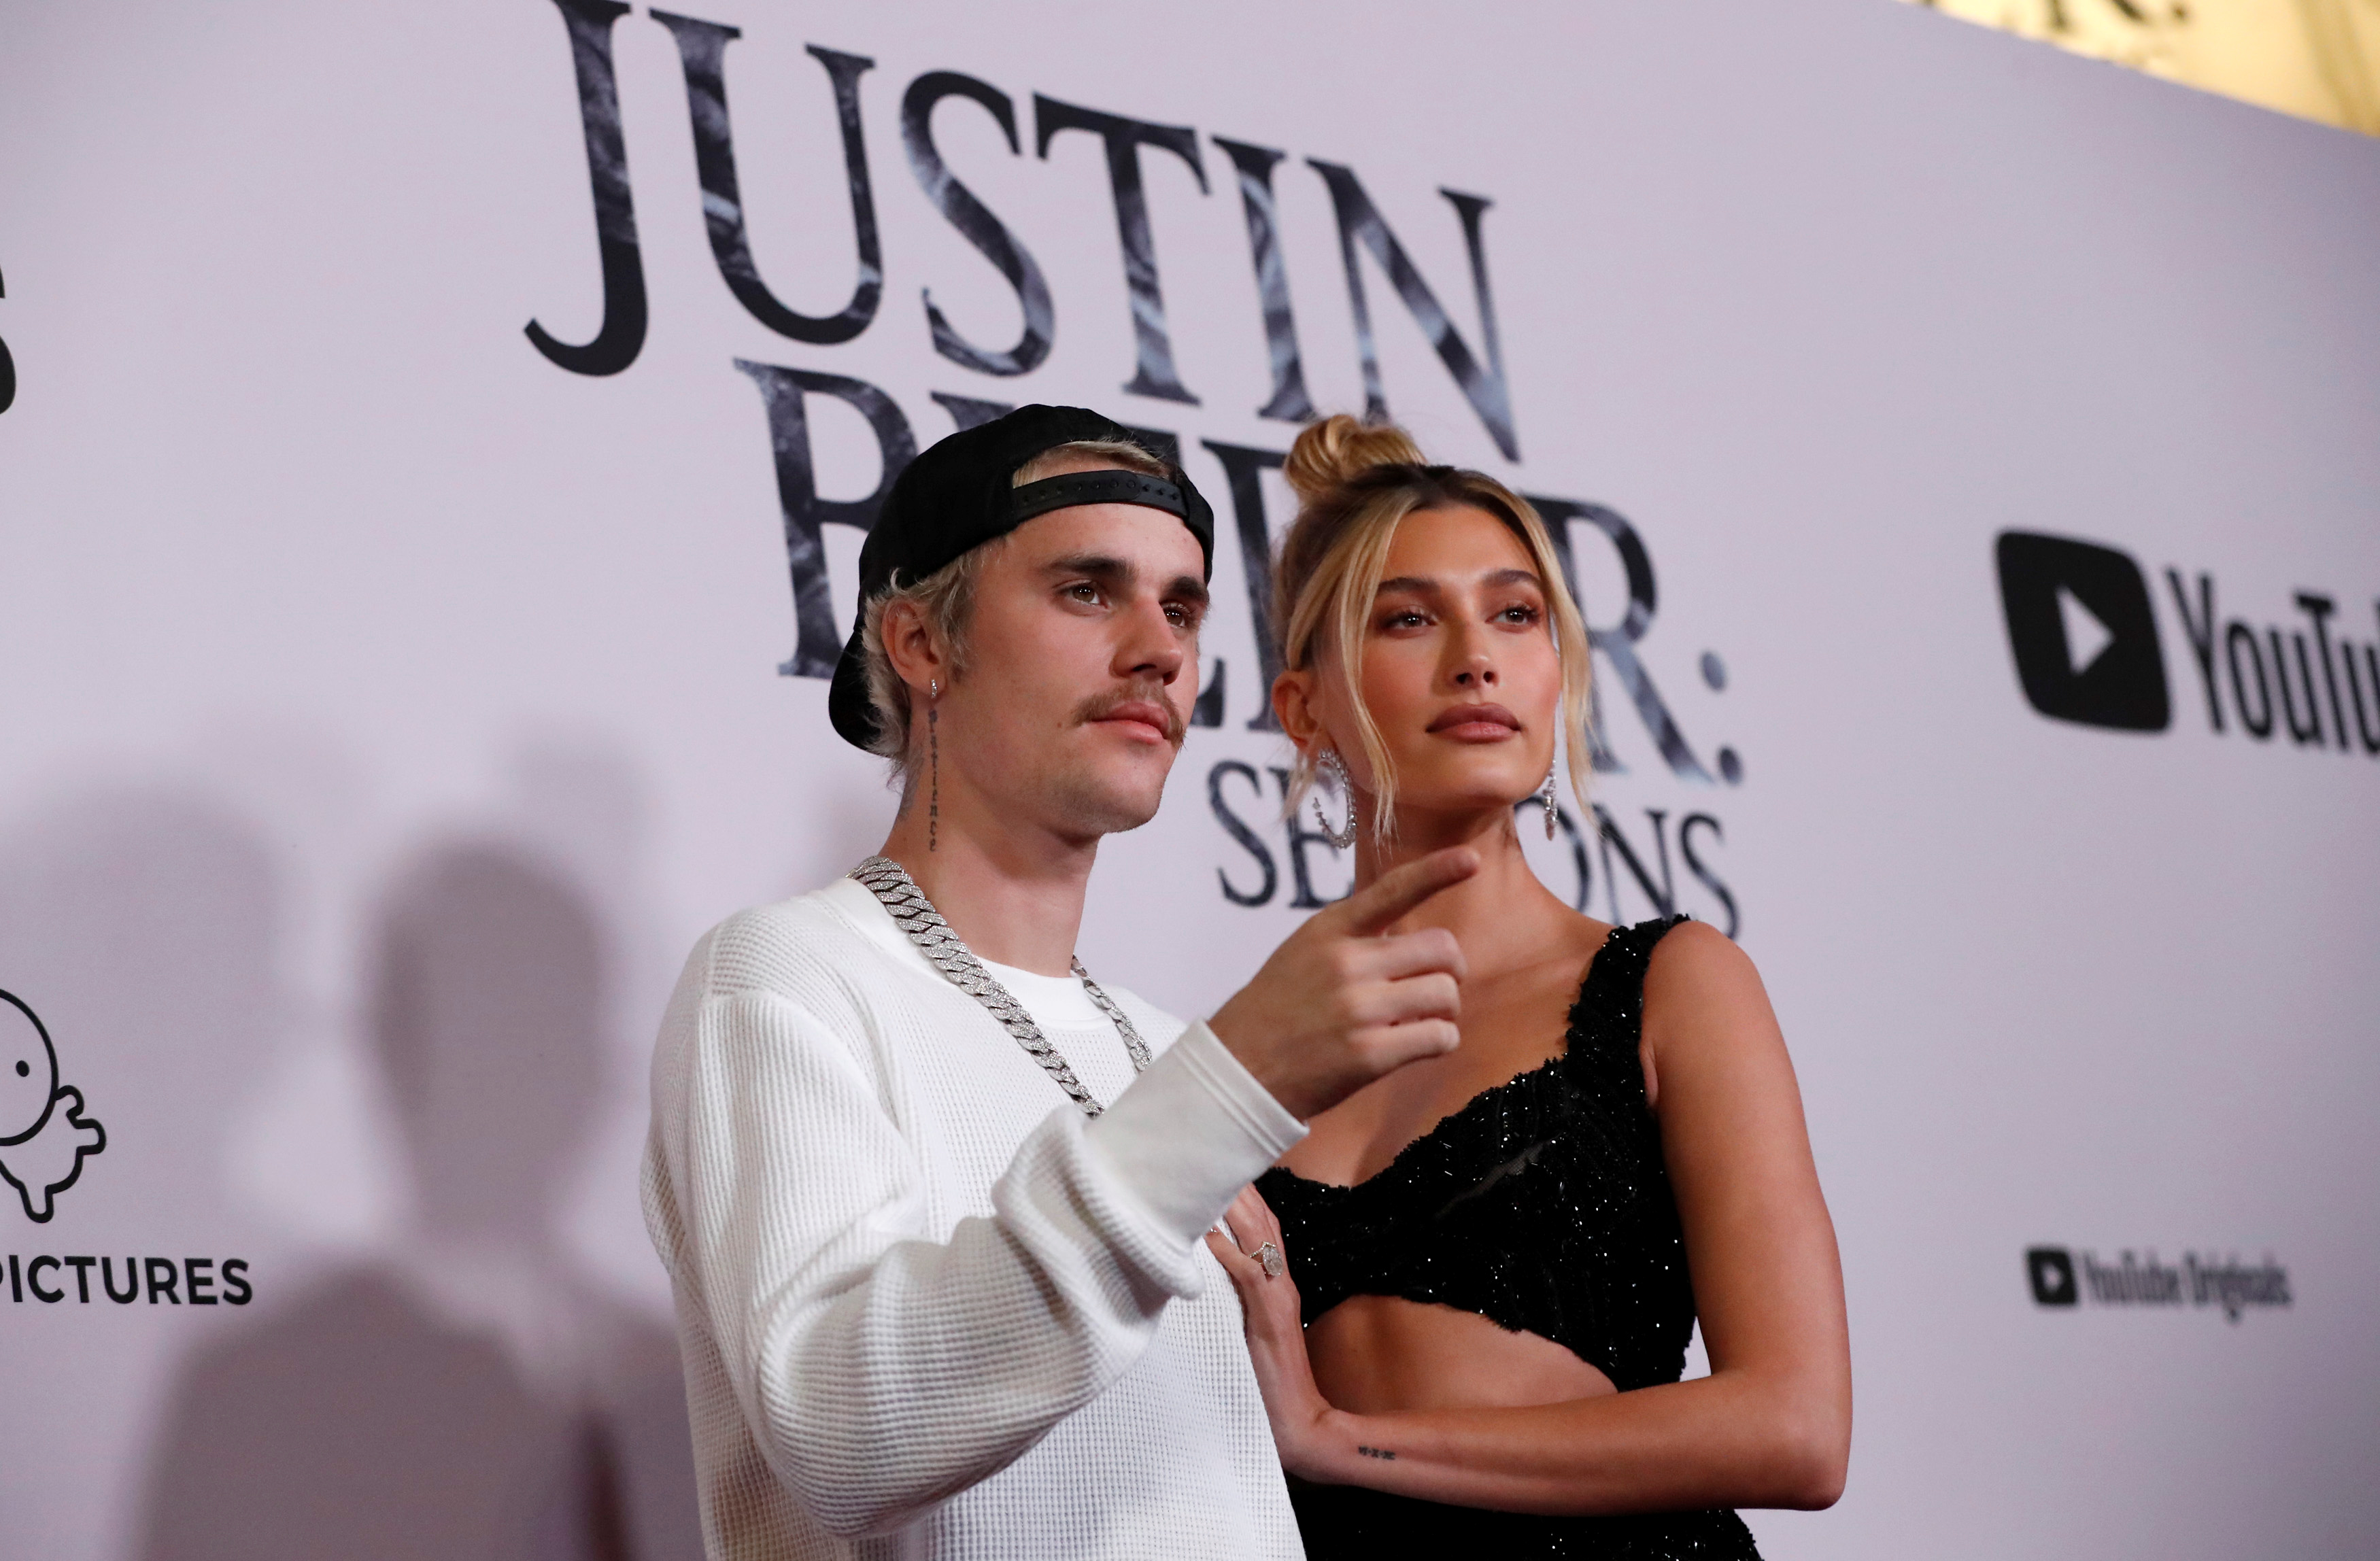 SHOOTING STARS COUNTDOWN Friday May 7: Bieber's Peaches Try To Stay Juicy For That Number 1 Spot